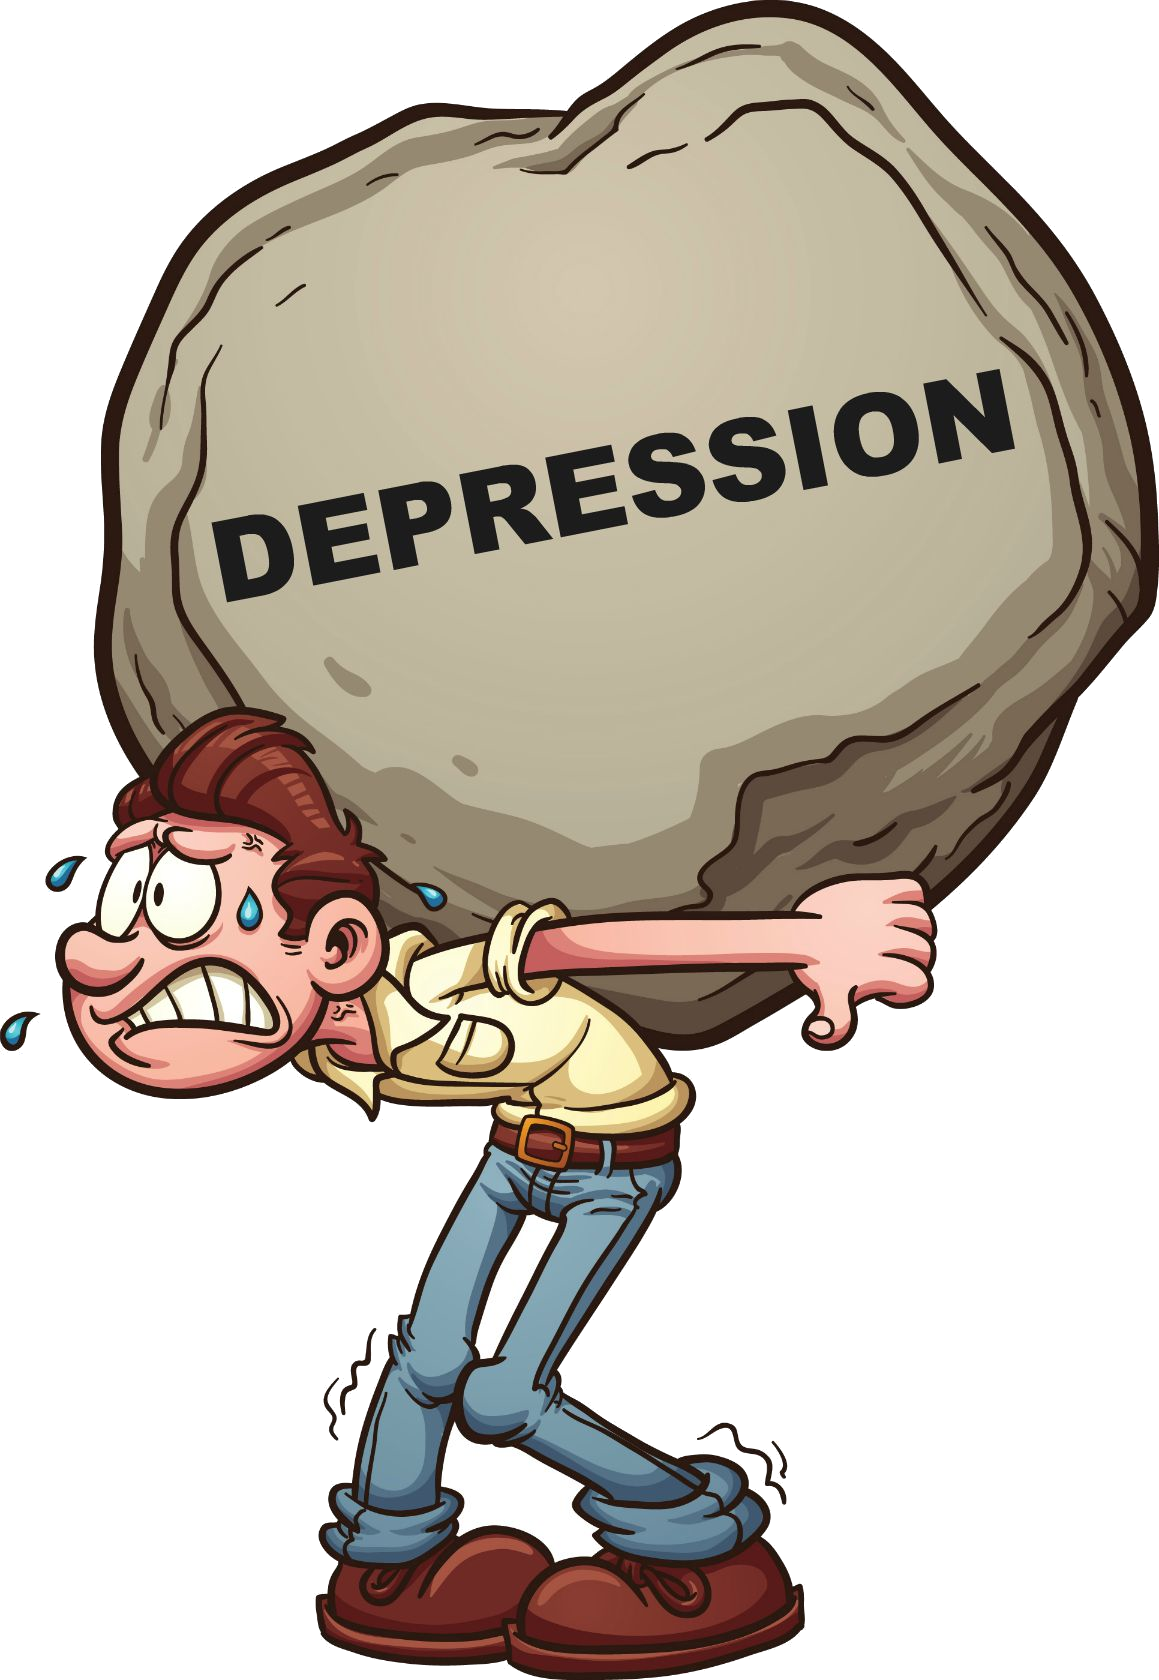 Depression Clipart Cartoon Depression Cartoon Transparent Free For Download On Webstockreview 2021